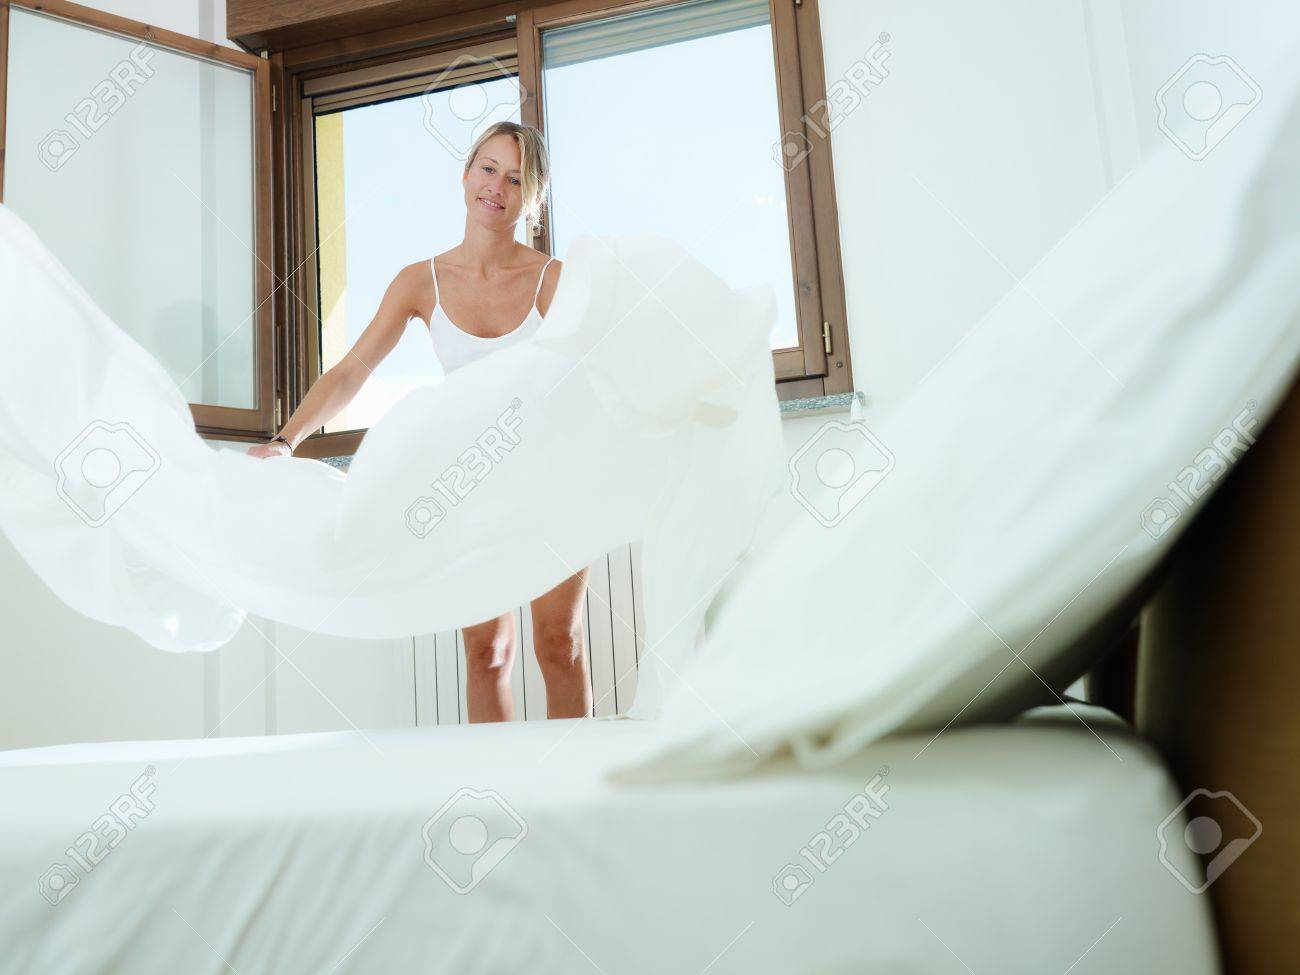 mid adult woman making bed with white sheet. Horizontal shape, low angle view Stock Photo - 7664846